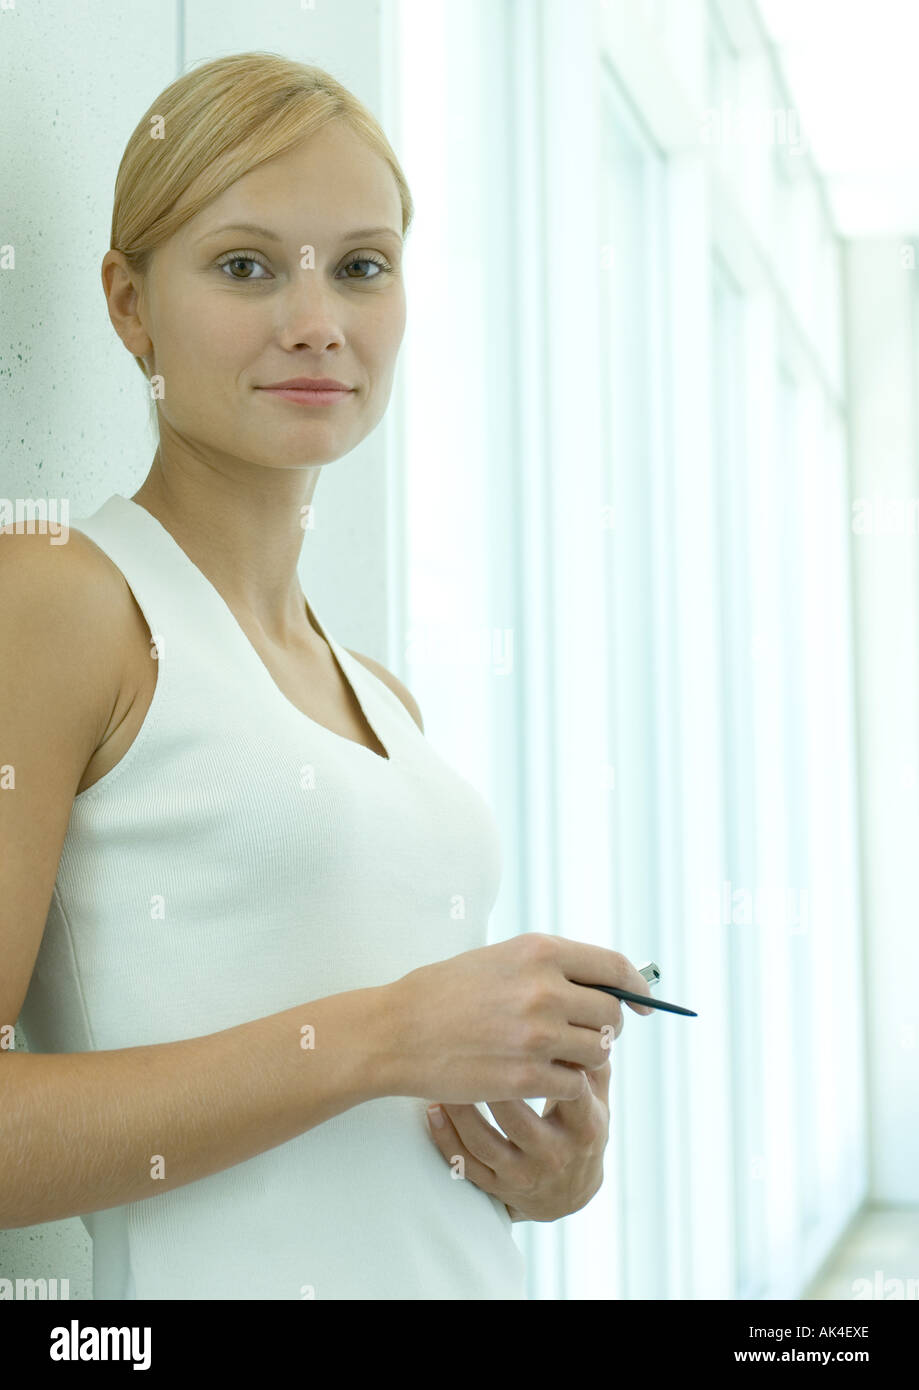 Woman standing in office space, stylus in hand - Stock Image